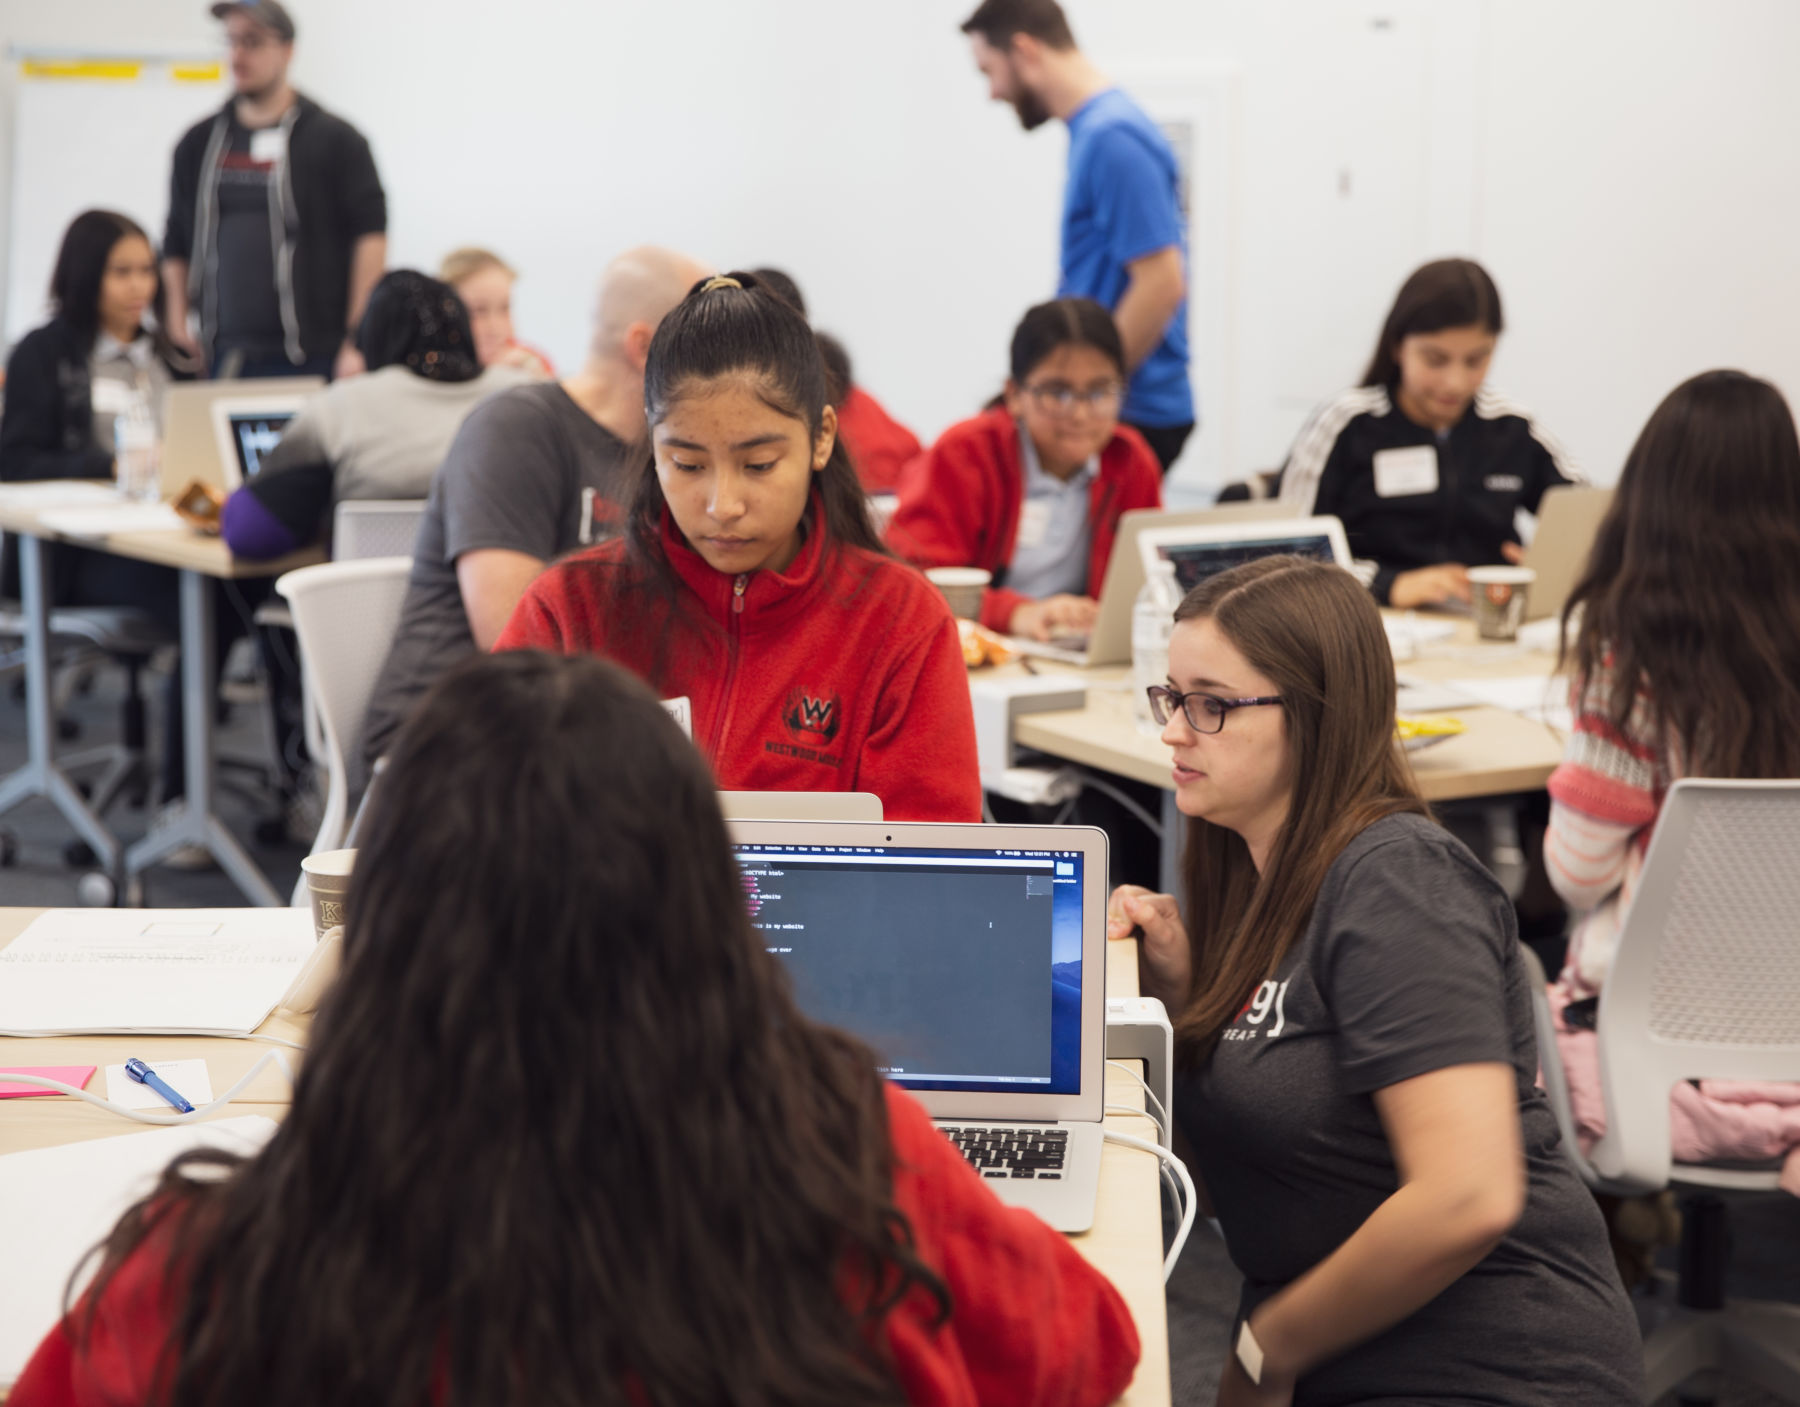 BITcamp Tech company helps next generation of female software engineers